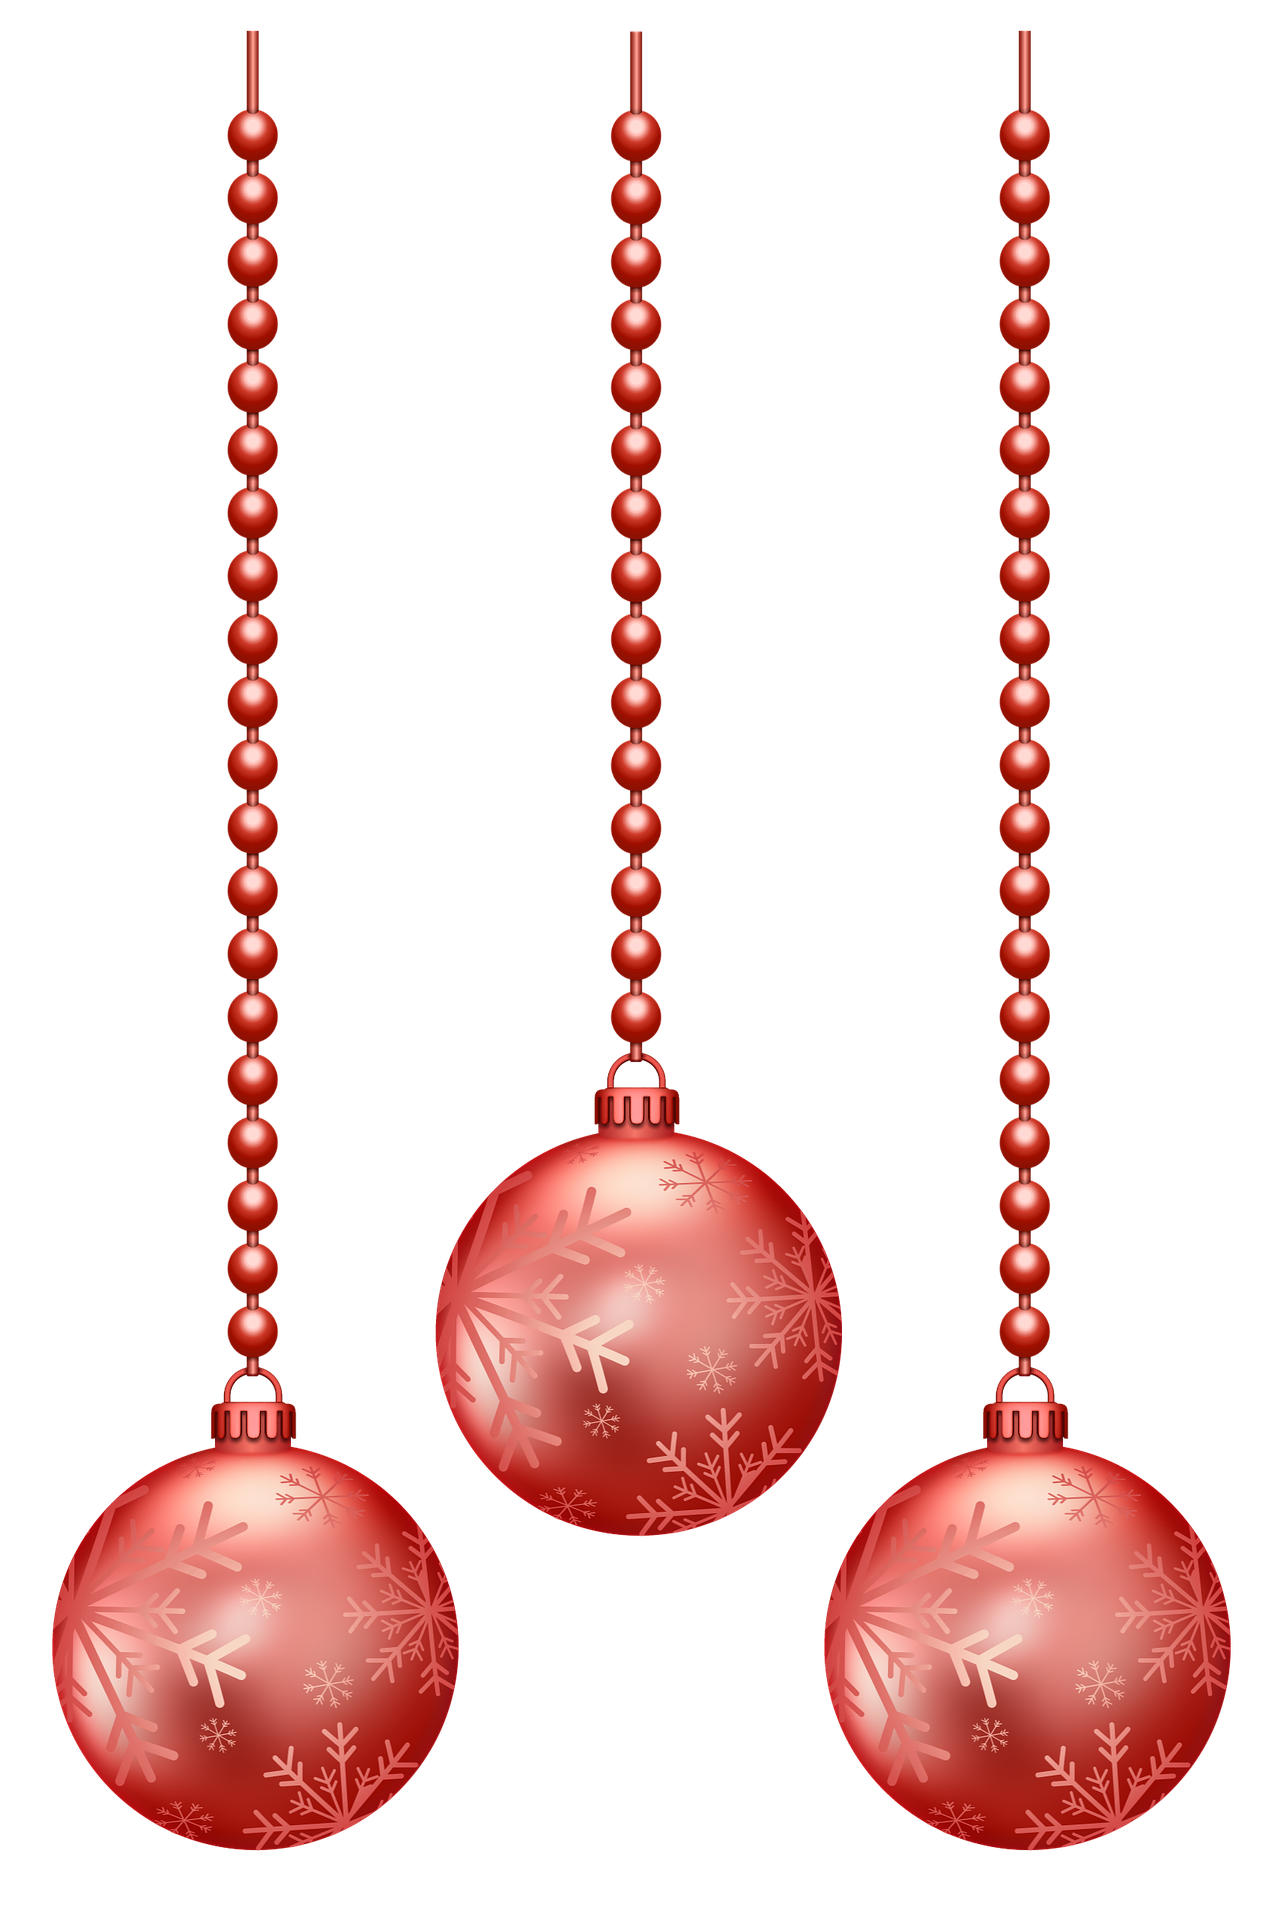 christmas-baubles-1824555_1920